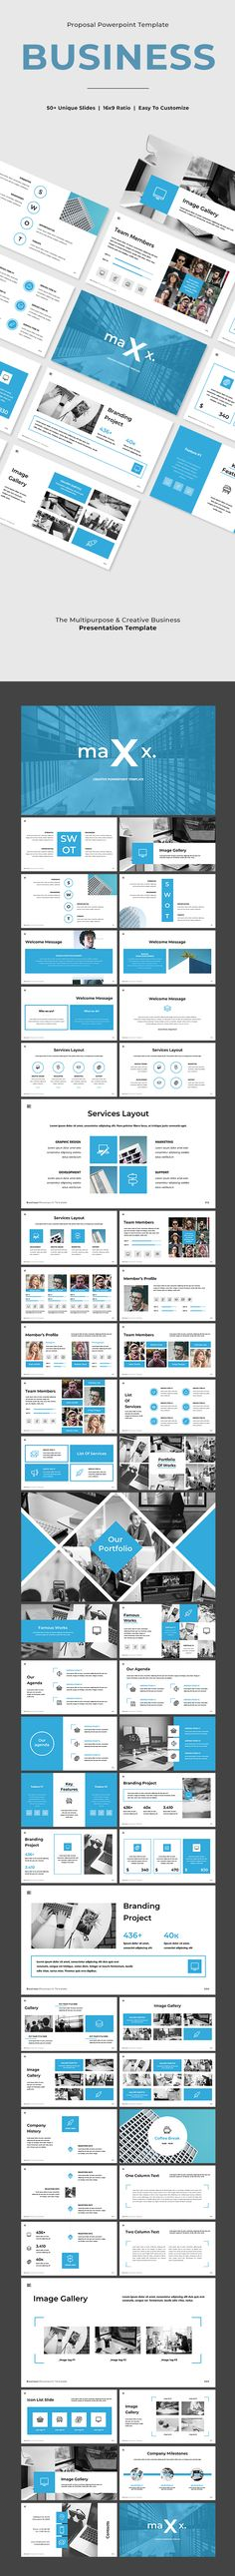 Maxx - Business Powerpoint Template